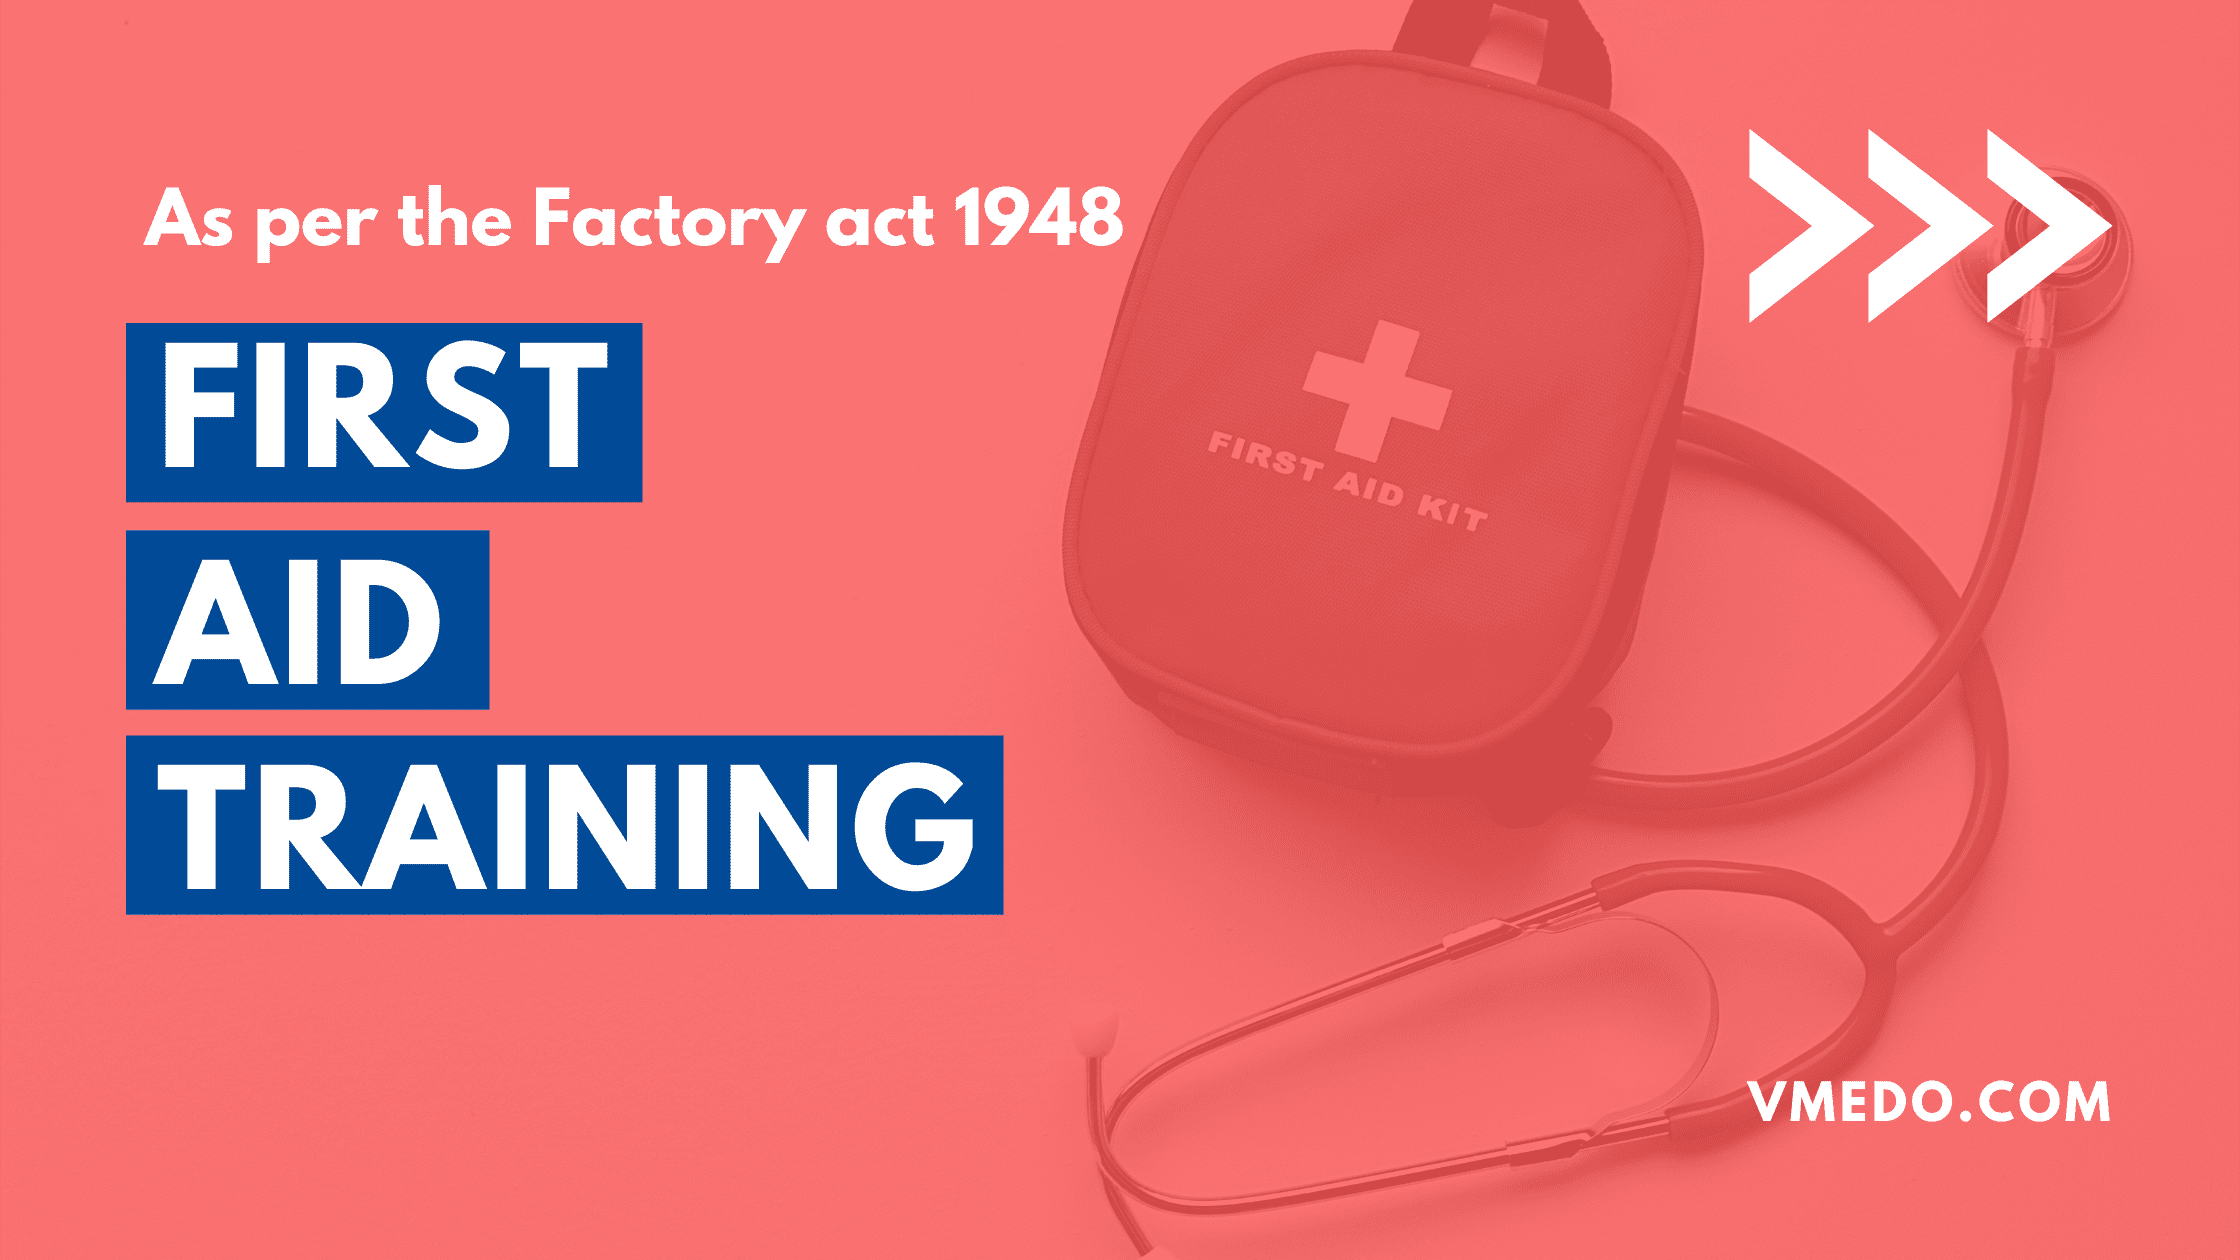 first aid training as per factories act 1948